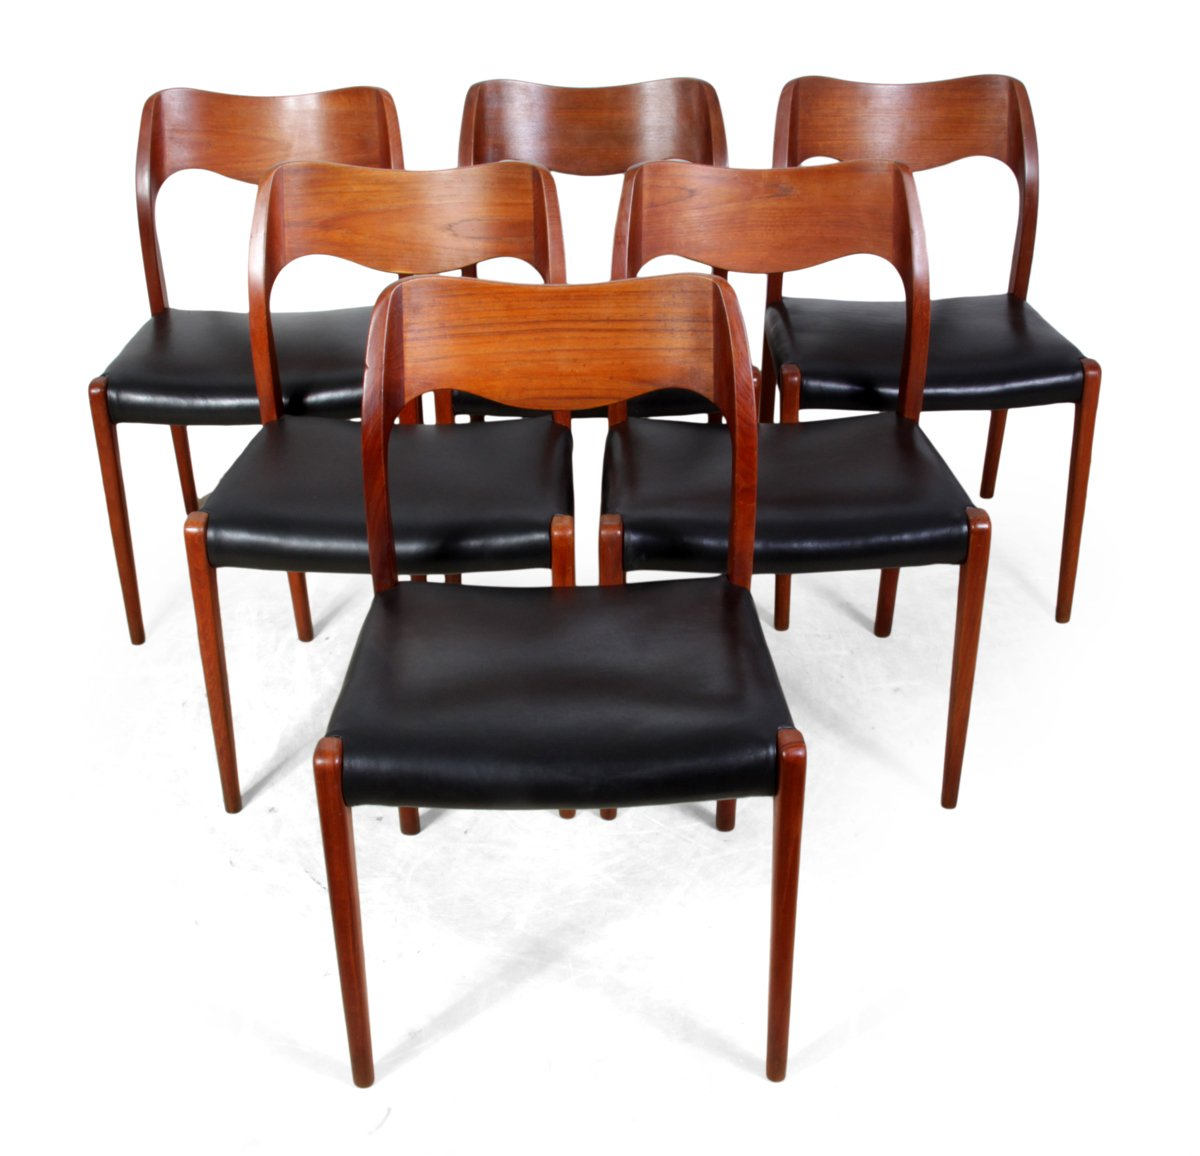 Model teak dining chairs by n o moller for j l mollers